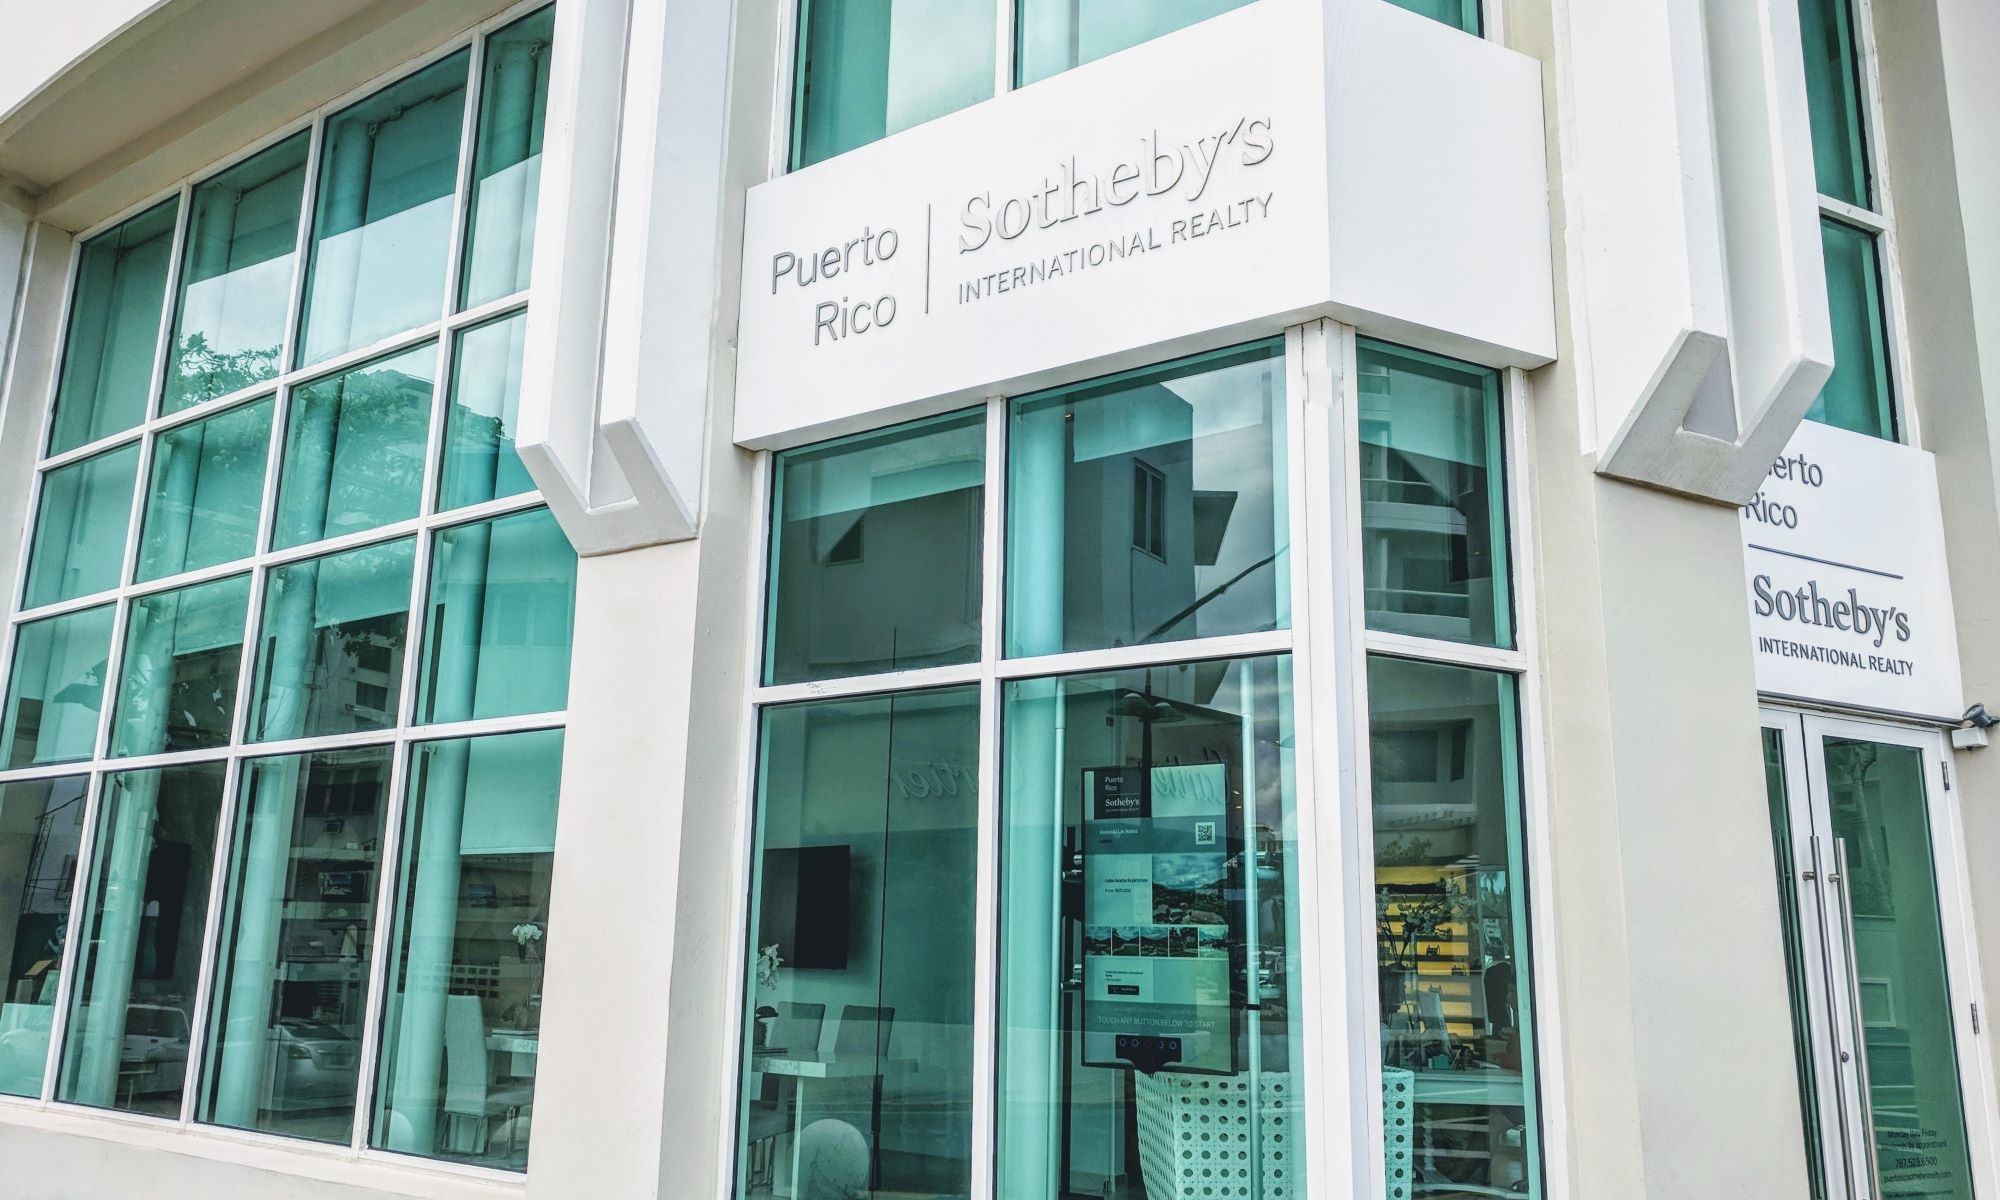 Office Puerto Rico Sotheby's International Realty Photo